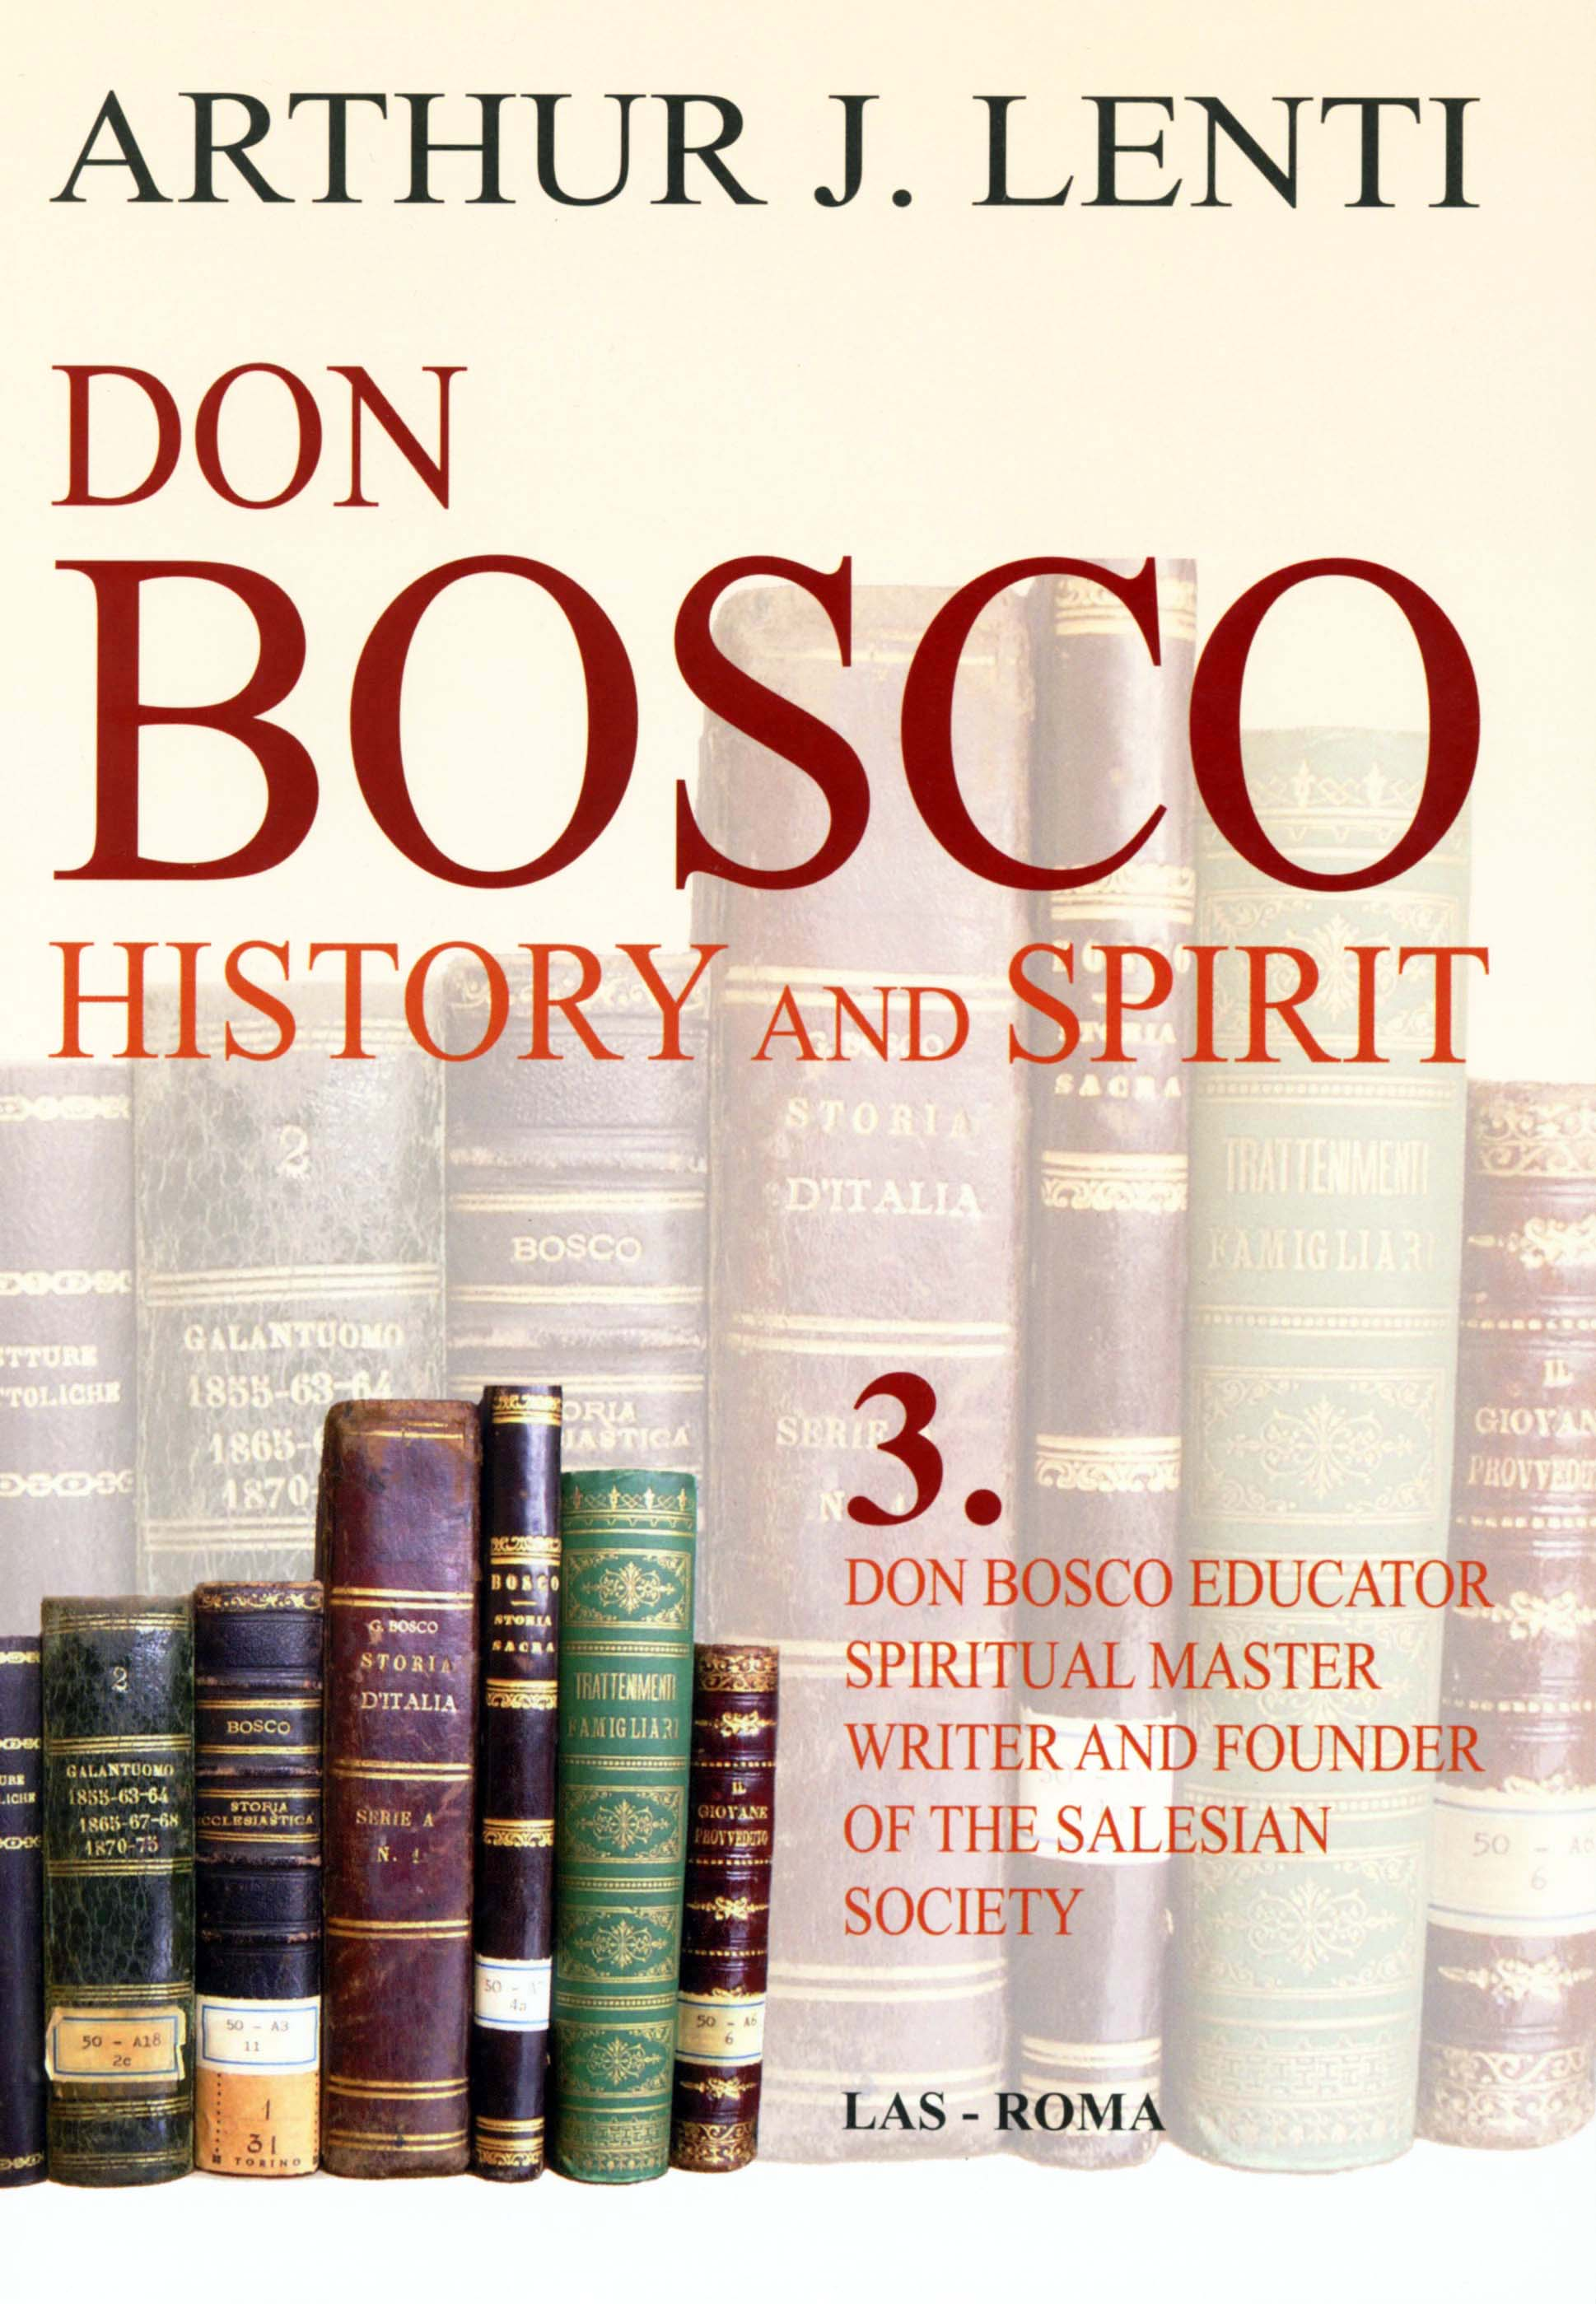 vol don bosco educator spiritual master writer and founder of don bosco history and spirit 3f